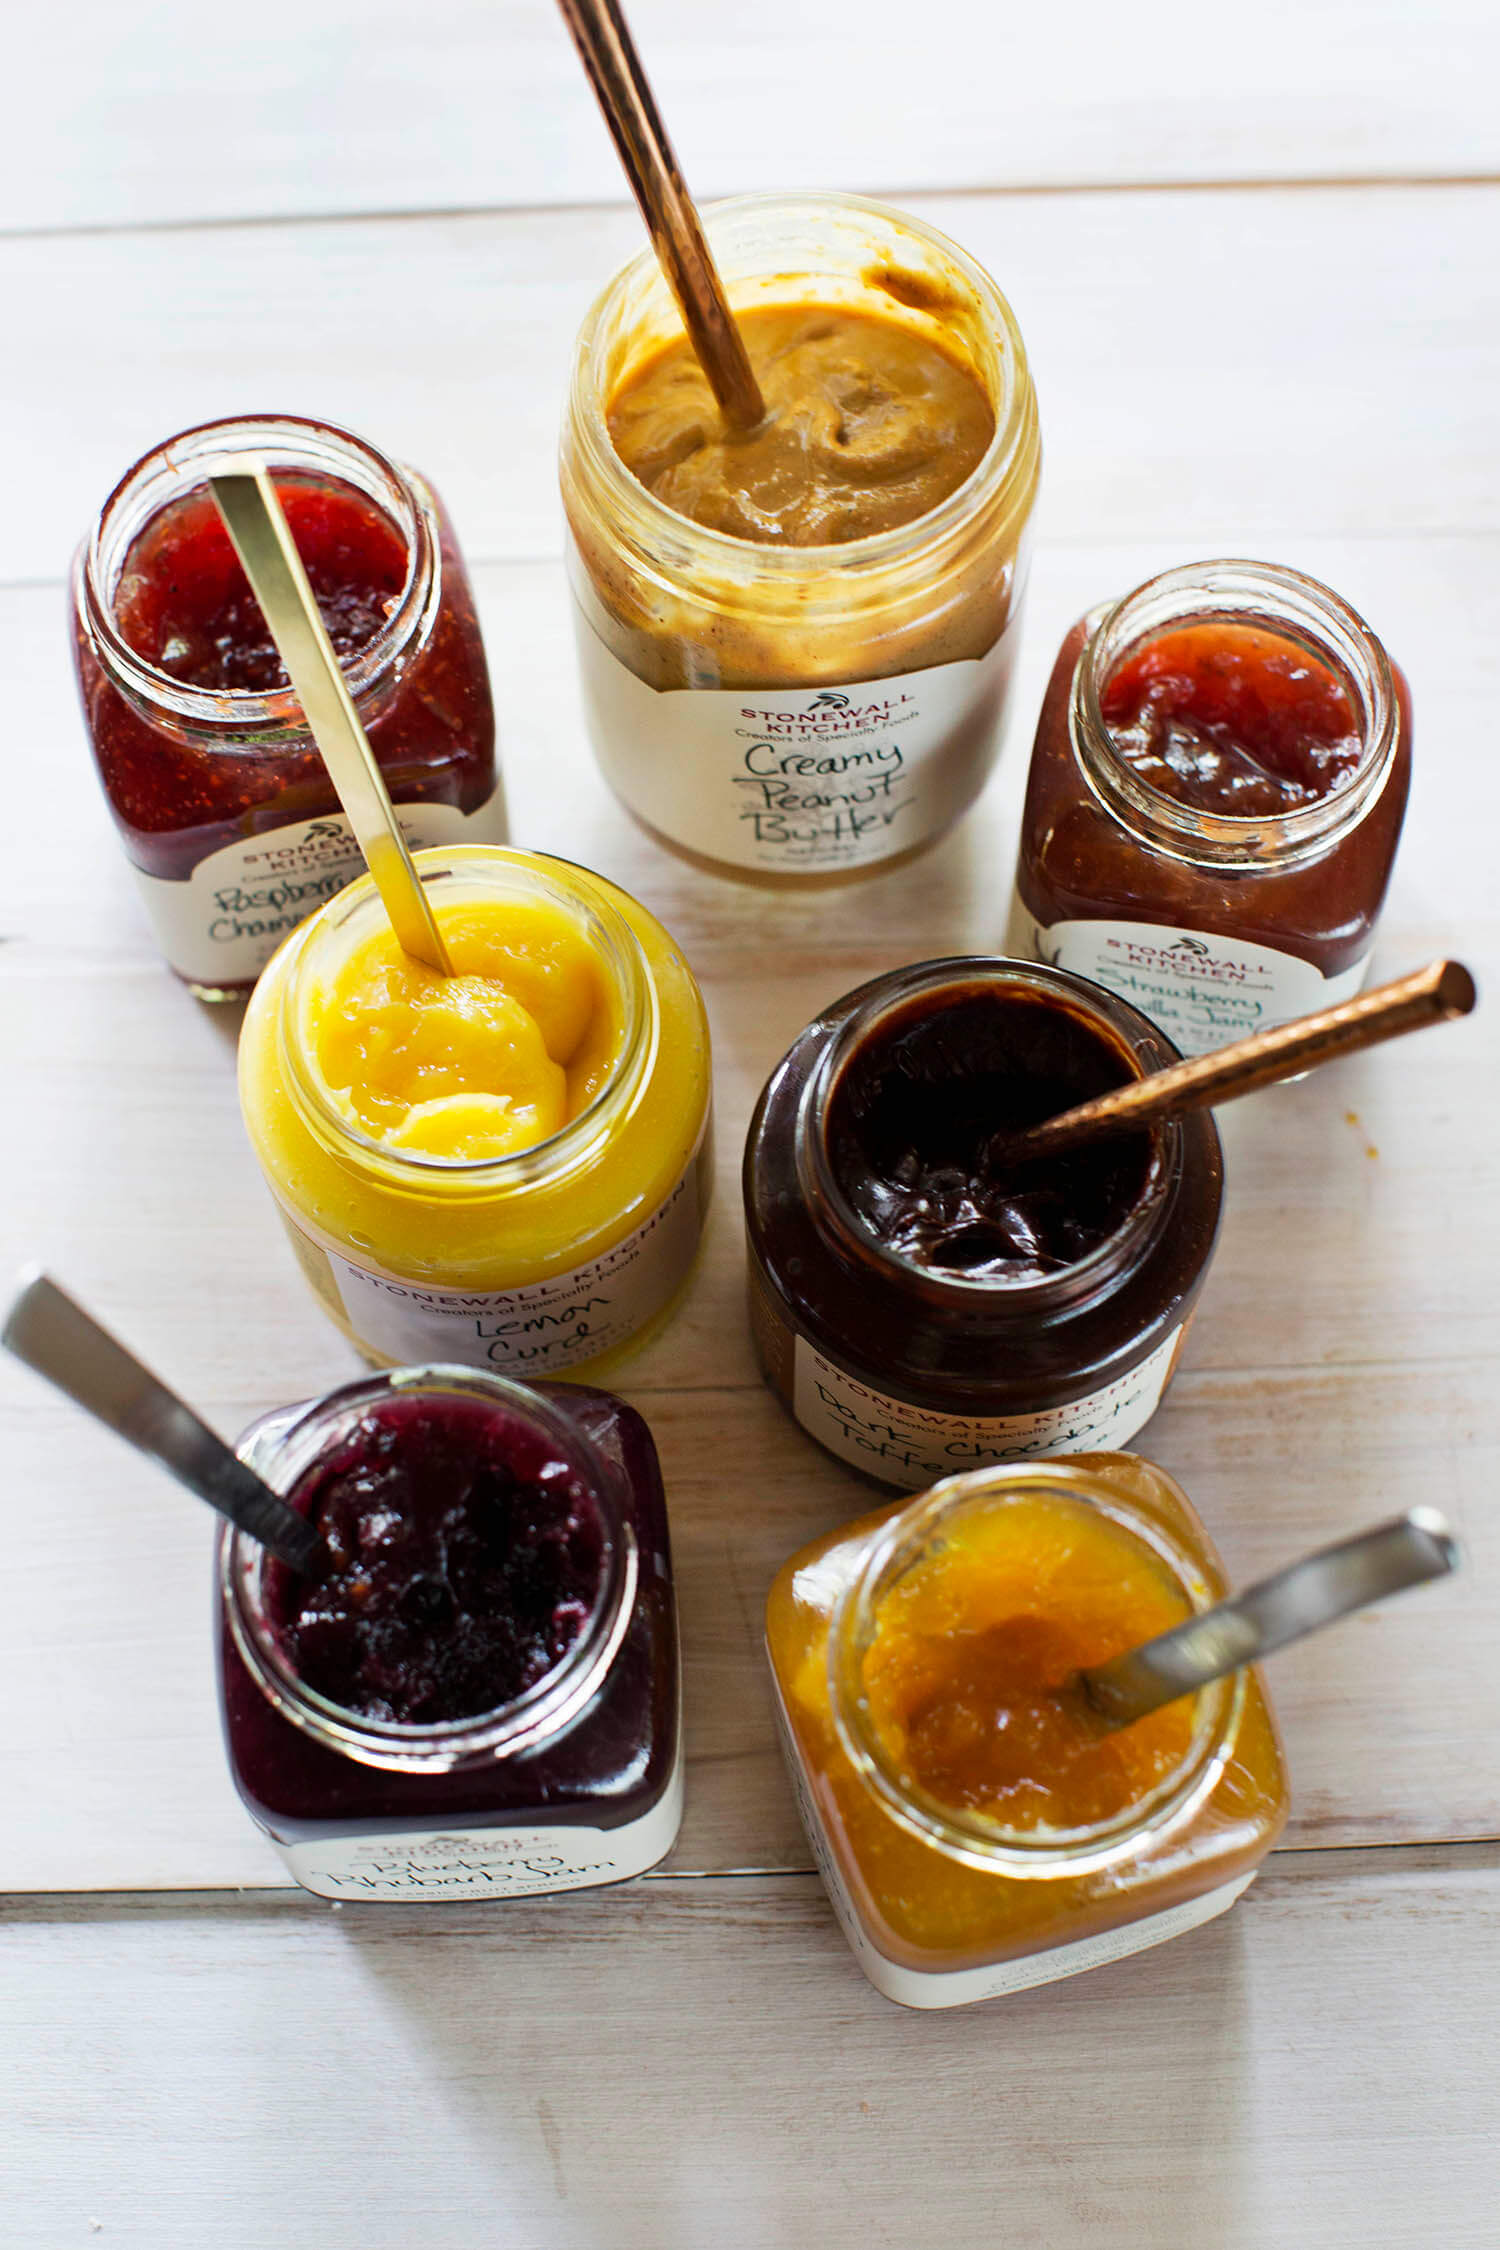 Stonewall Kitchen jams and sauces